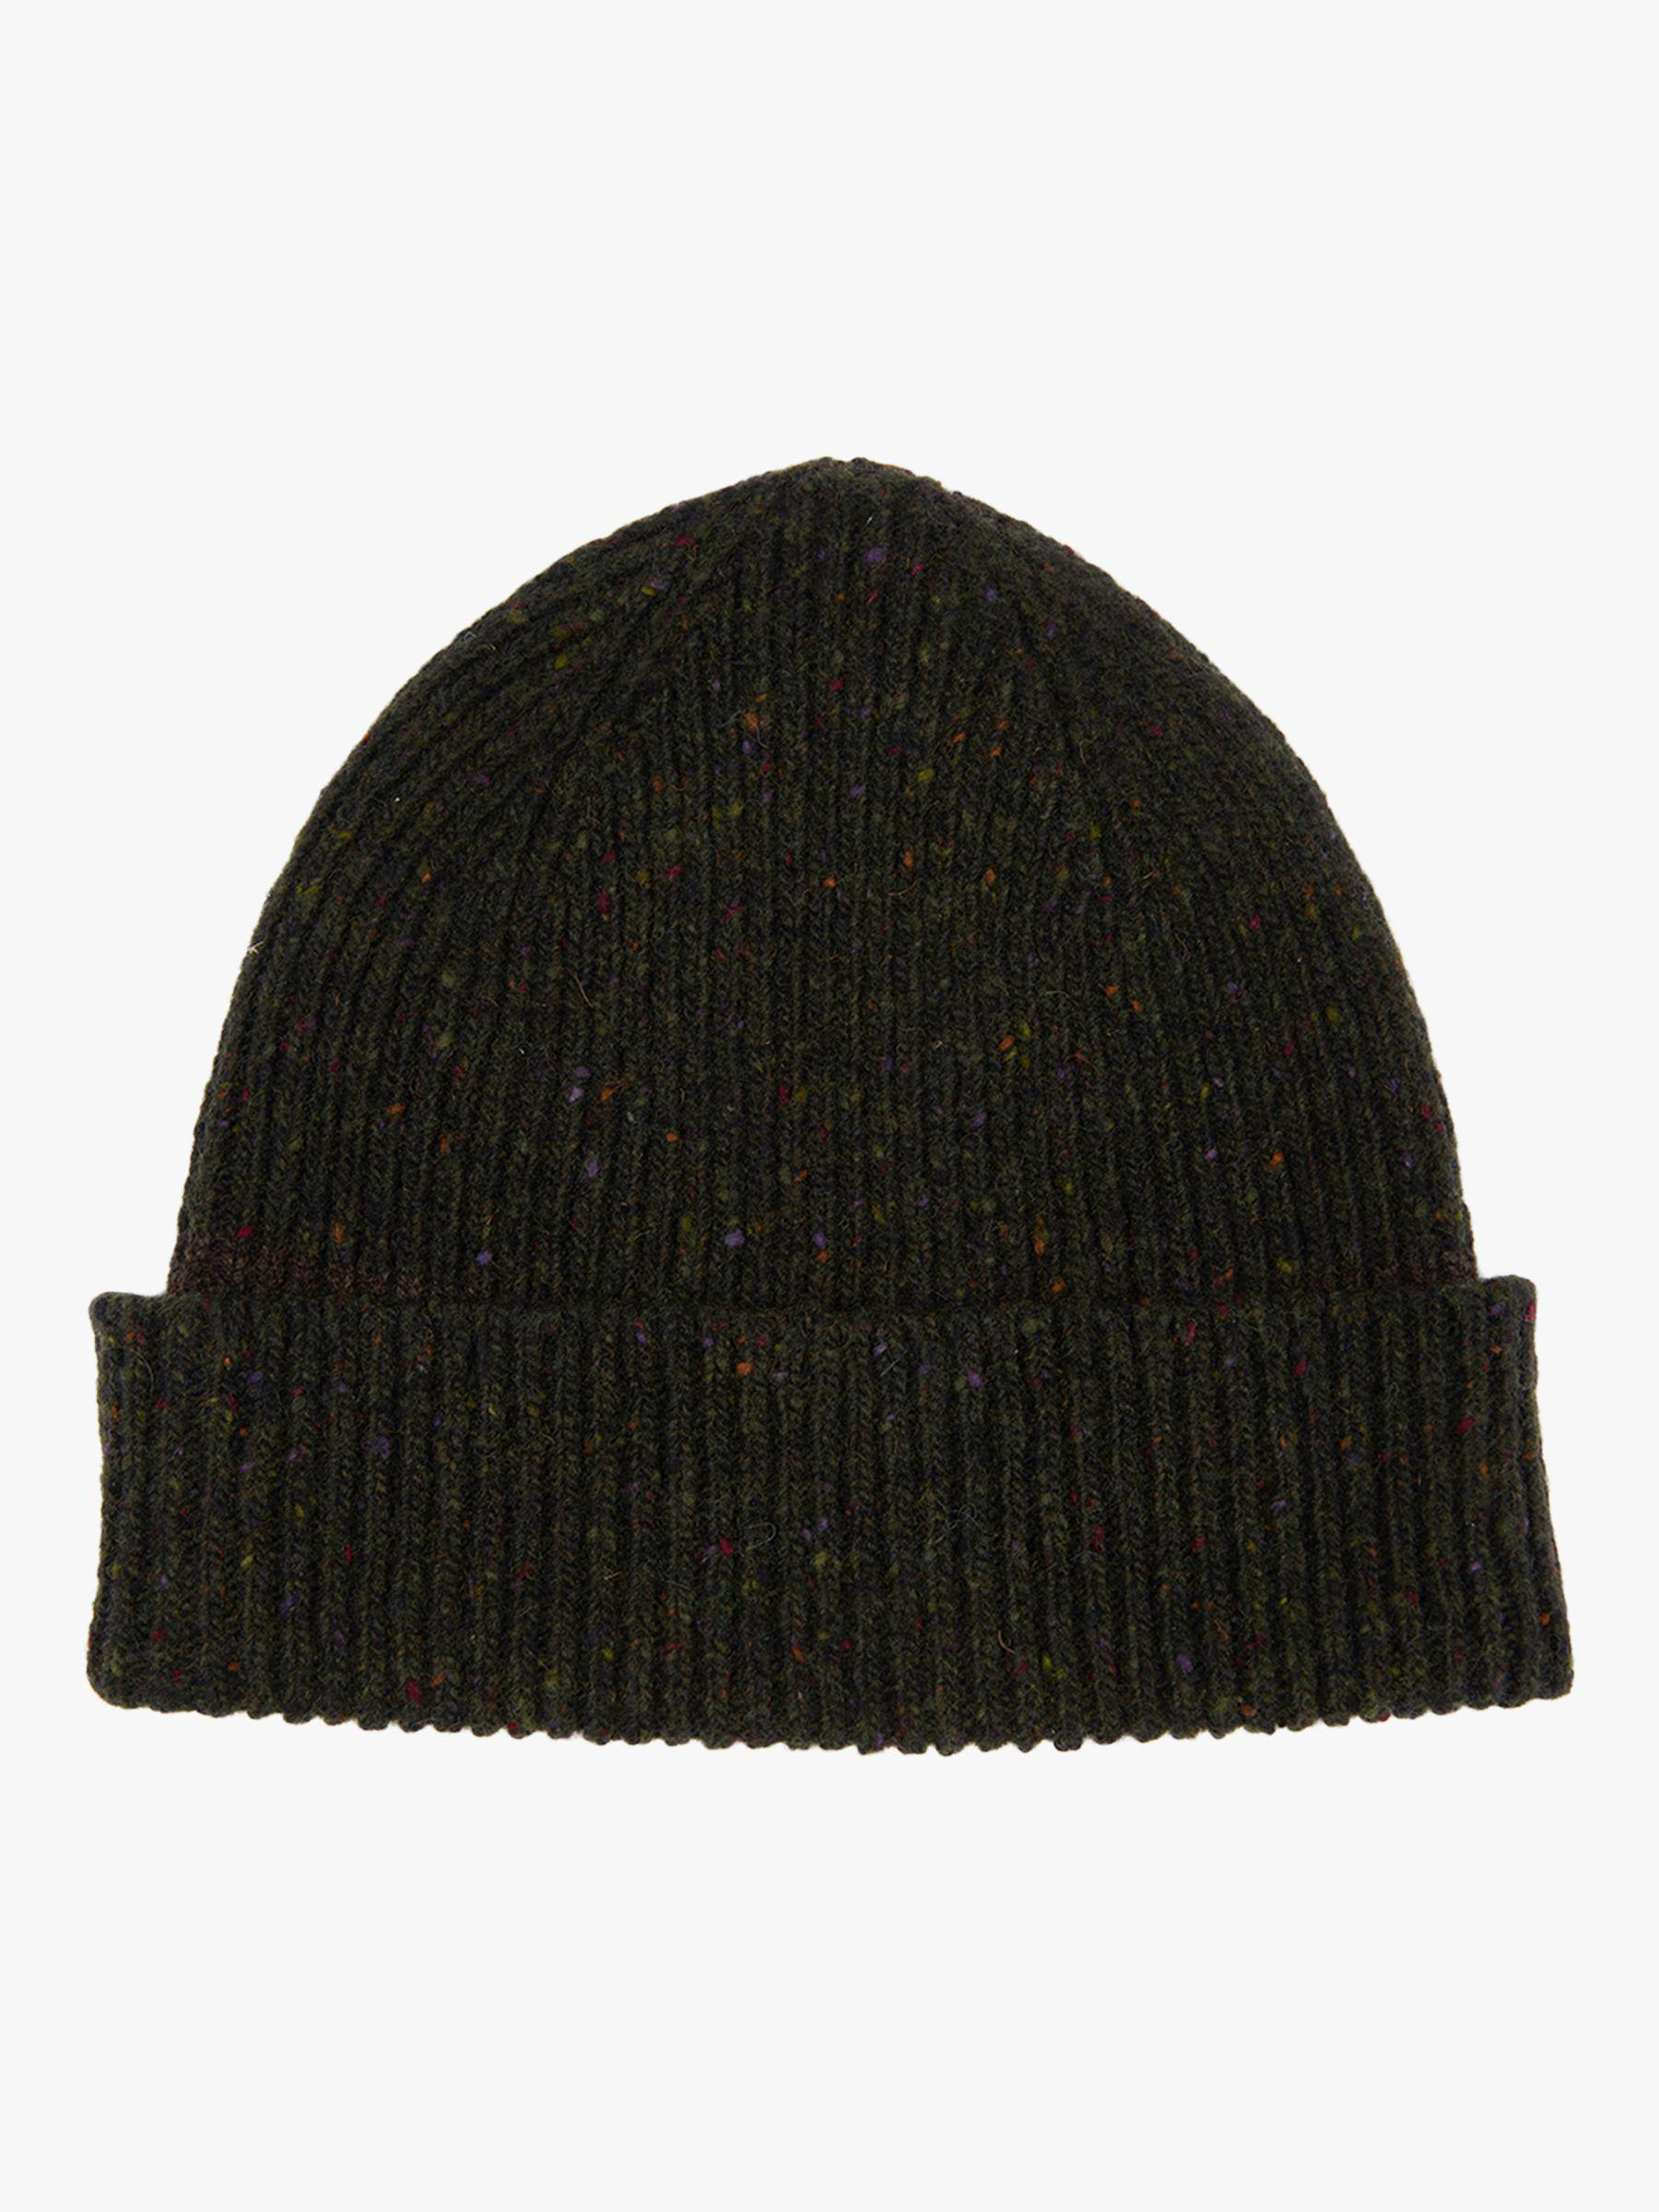 Barbour Lowerfell Donegal Wool Beanie in Black for Men - Lyst e065f37c1bec